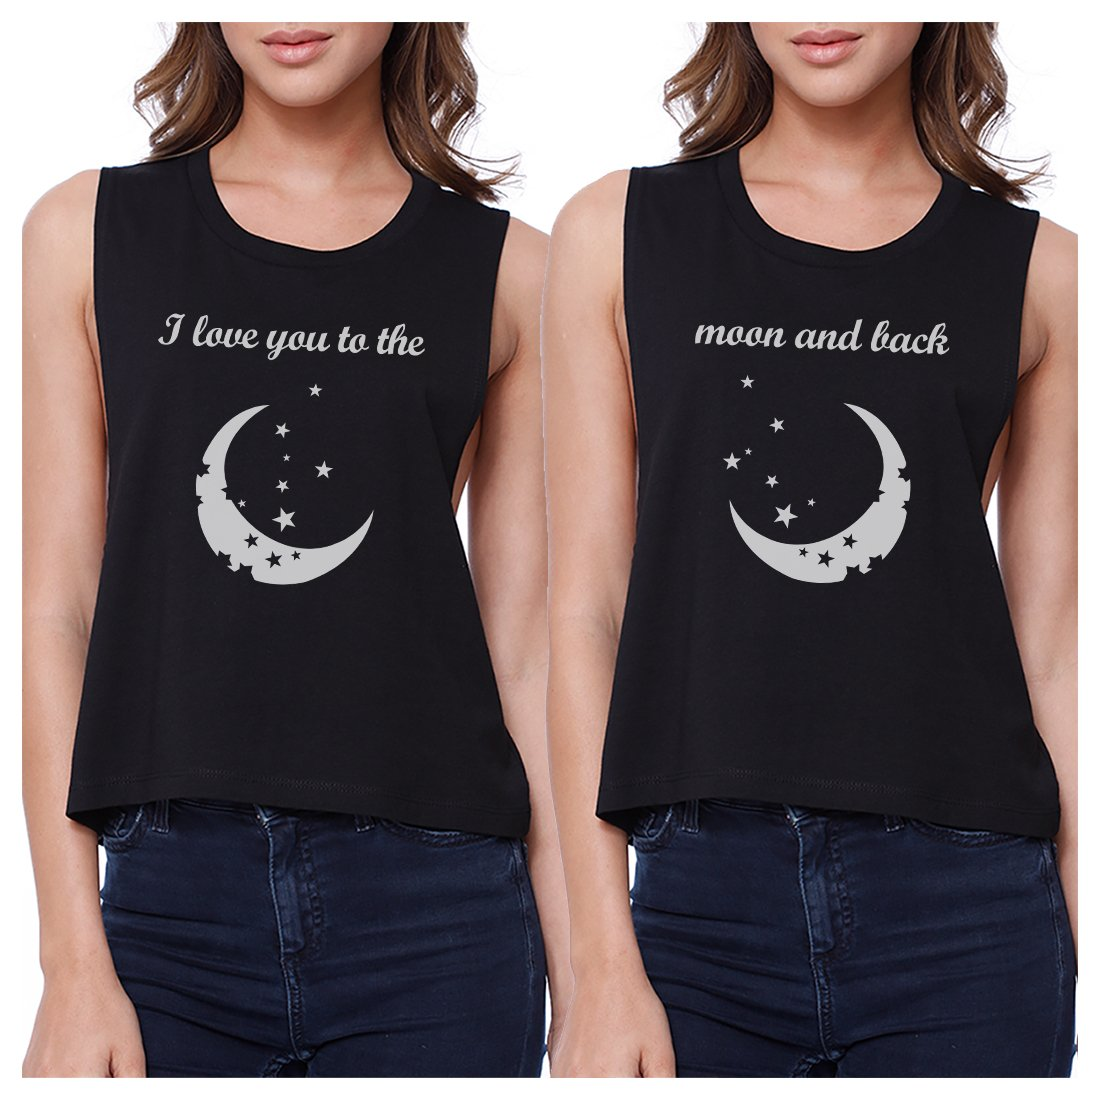 Moon And Back BFF Matching Crop Top Womens Sleeveless Tee